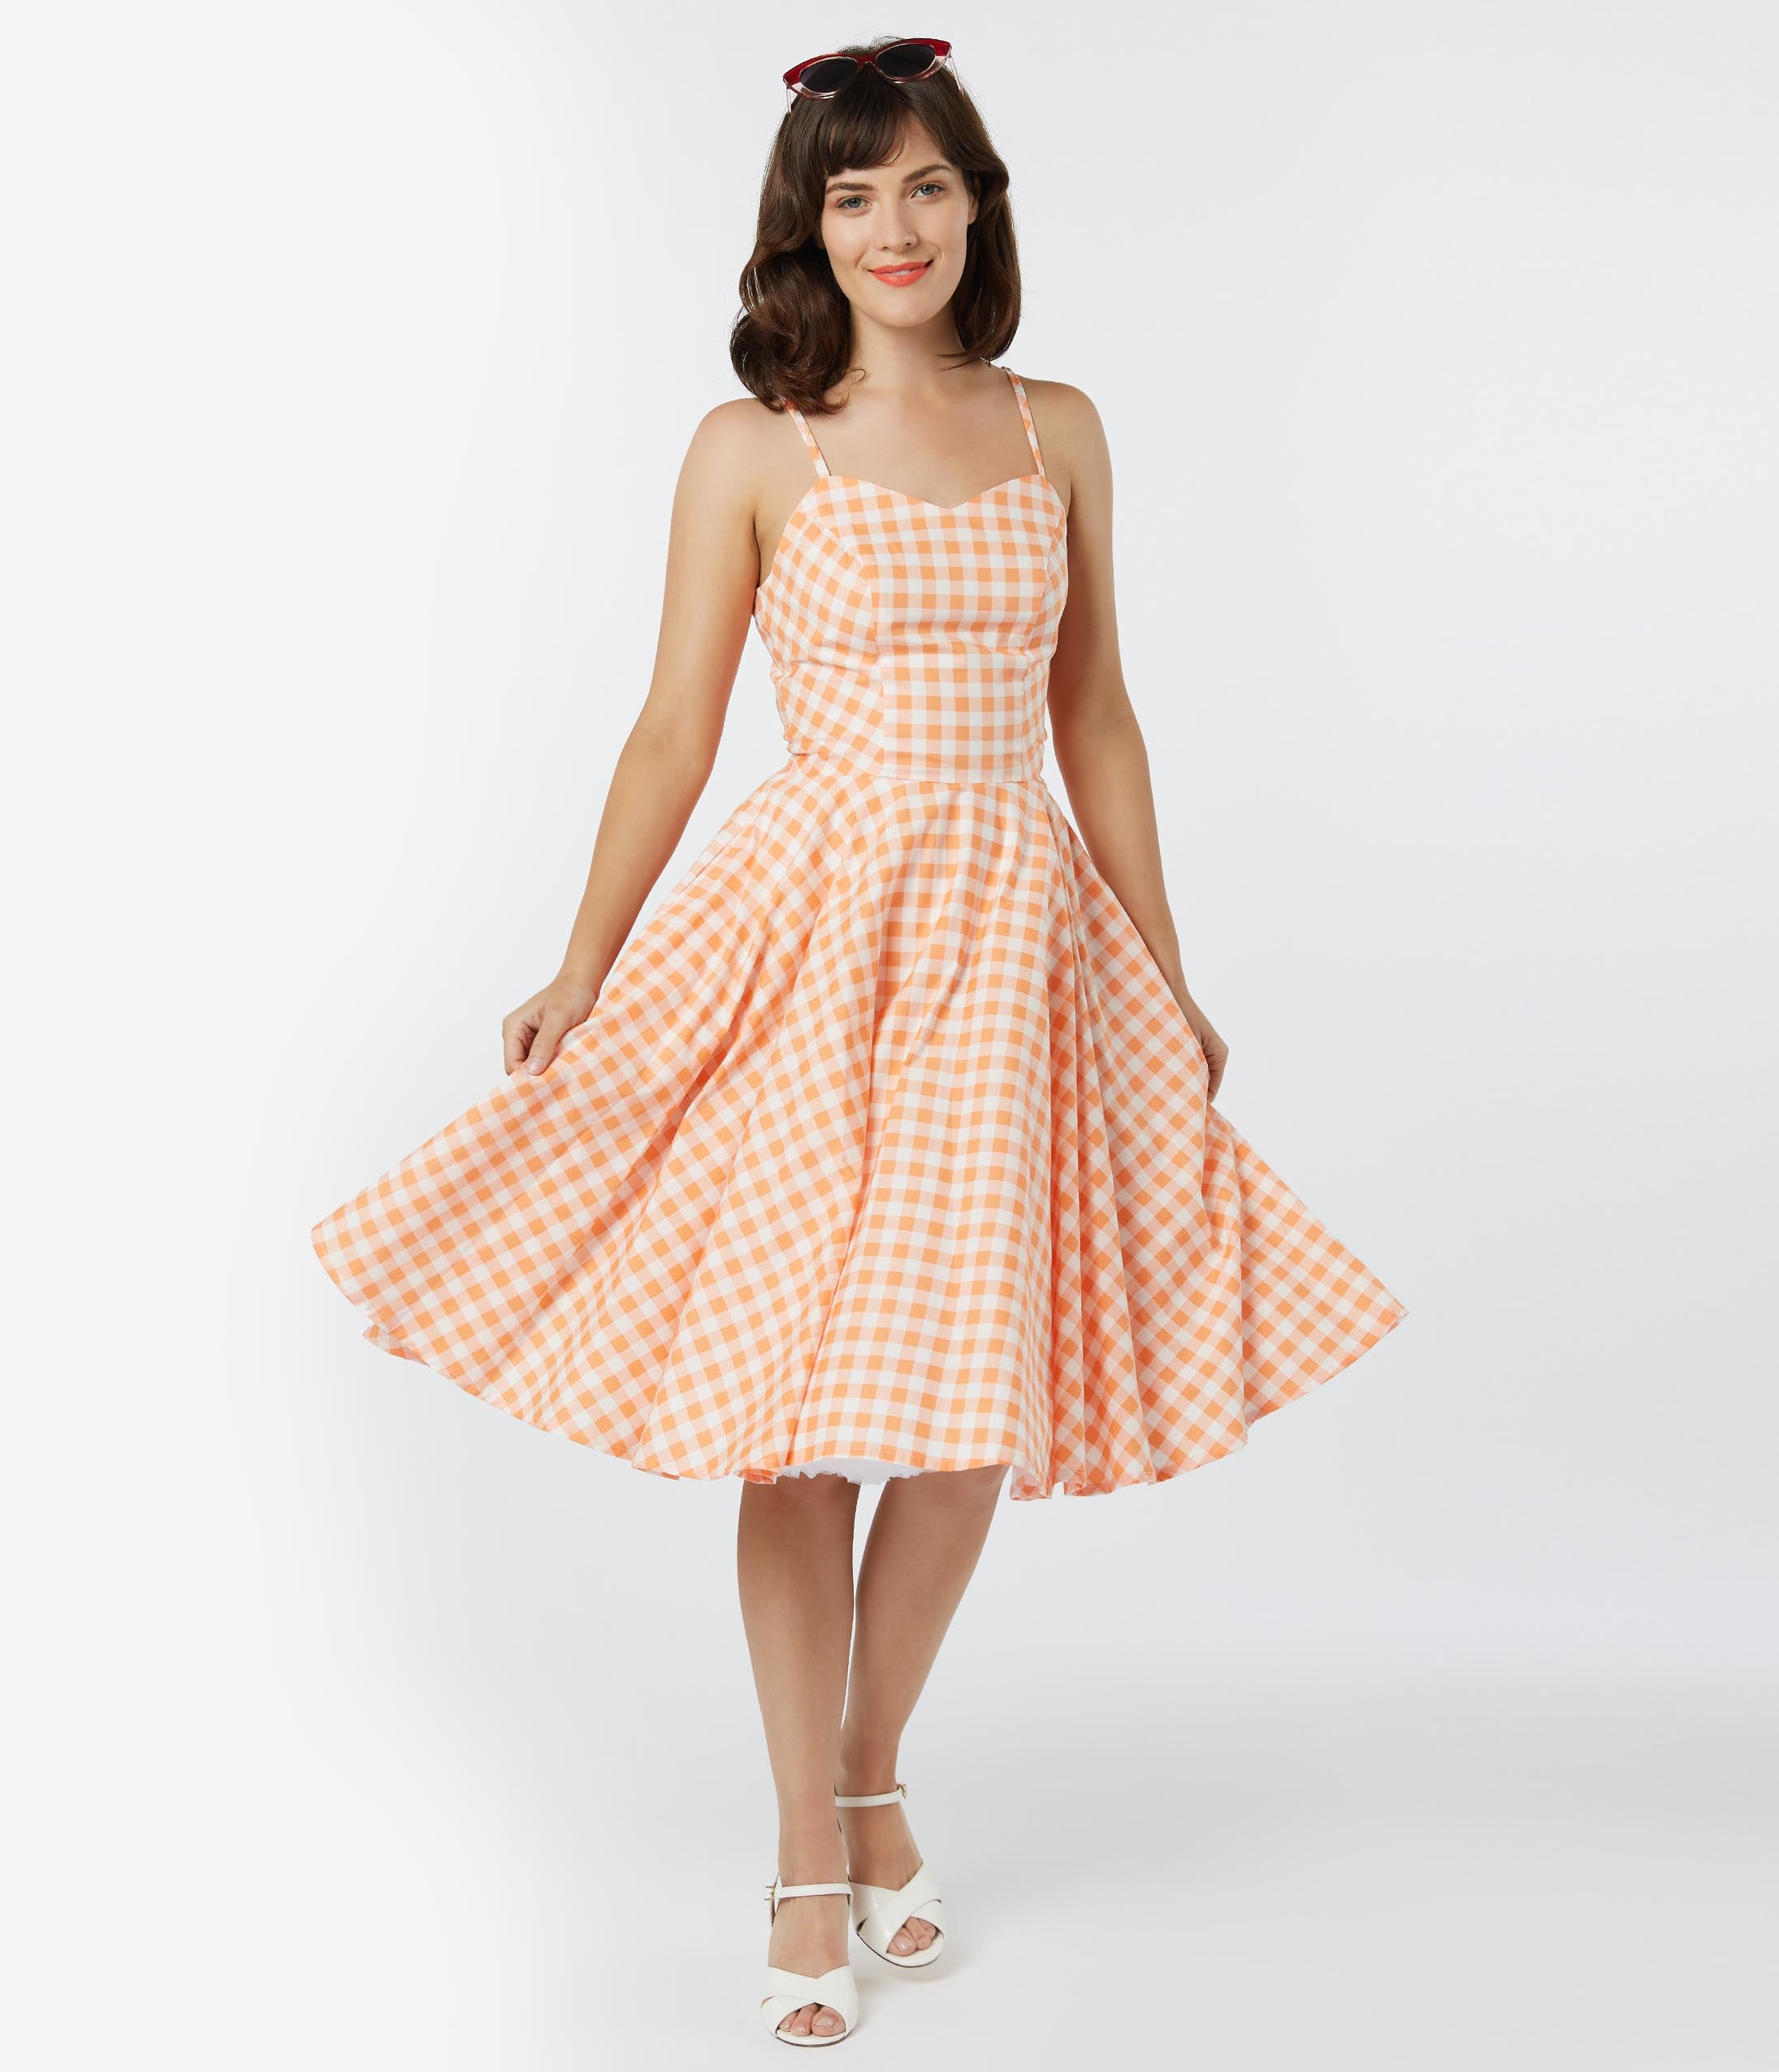 1950s Swing Dresses | 50s Swing Dress Retro Style Pink Gingham Ray Swing Dress $88.00 AT vintagedancer.com